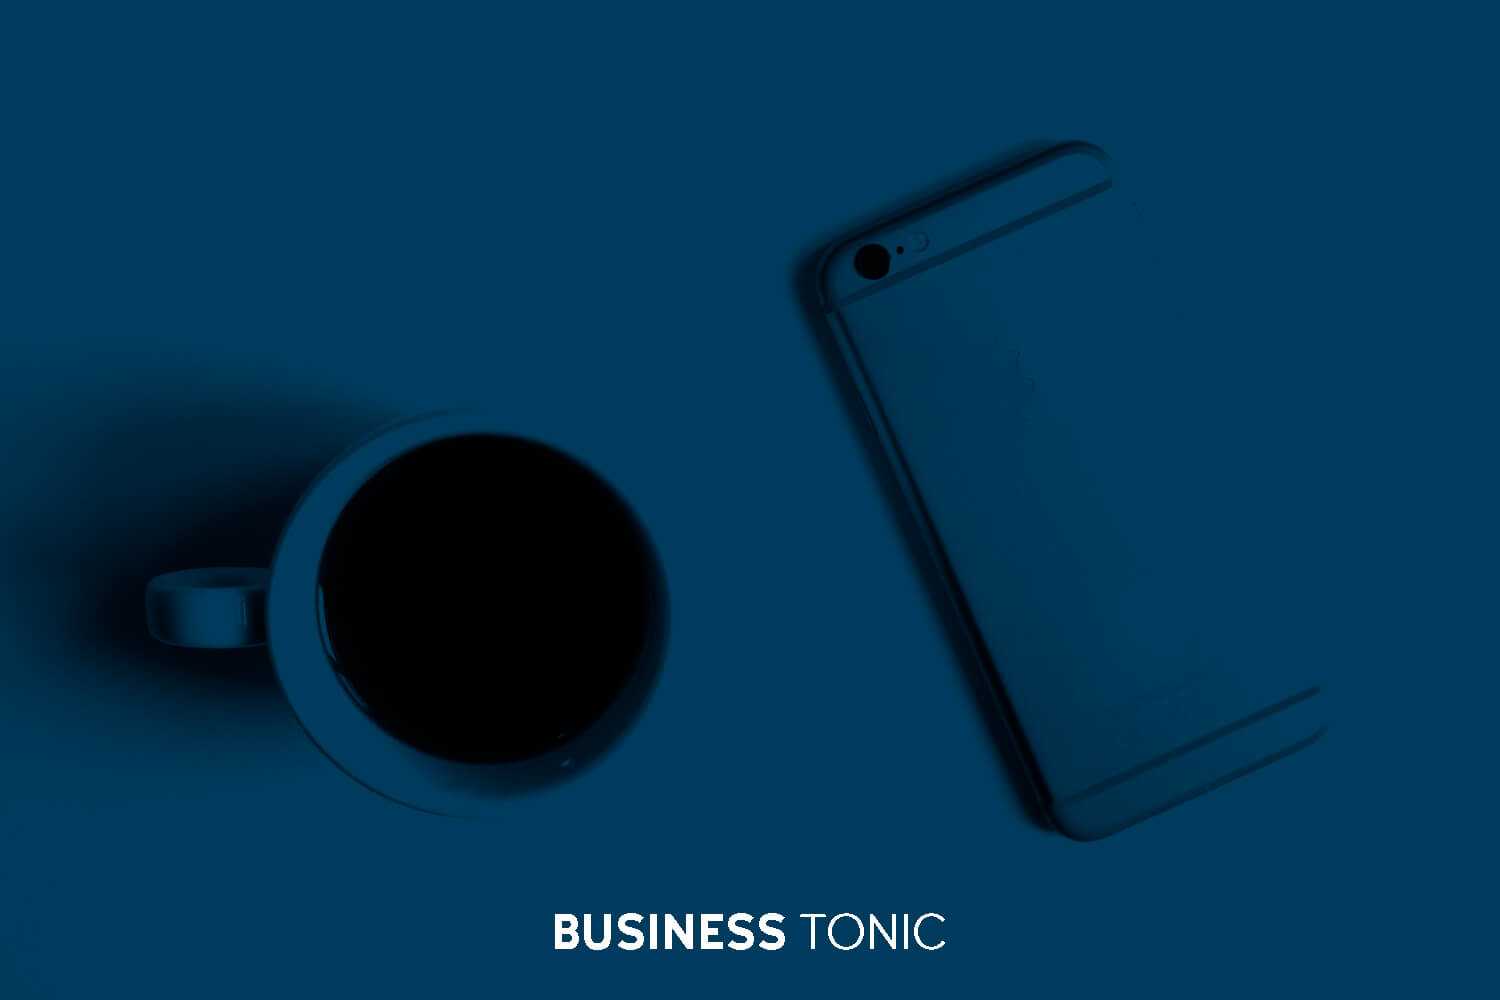 Business tonic